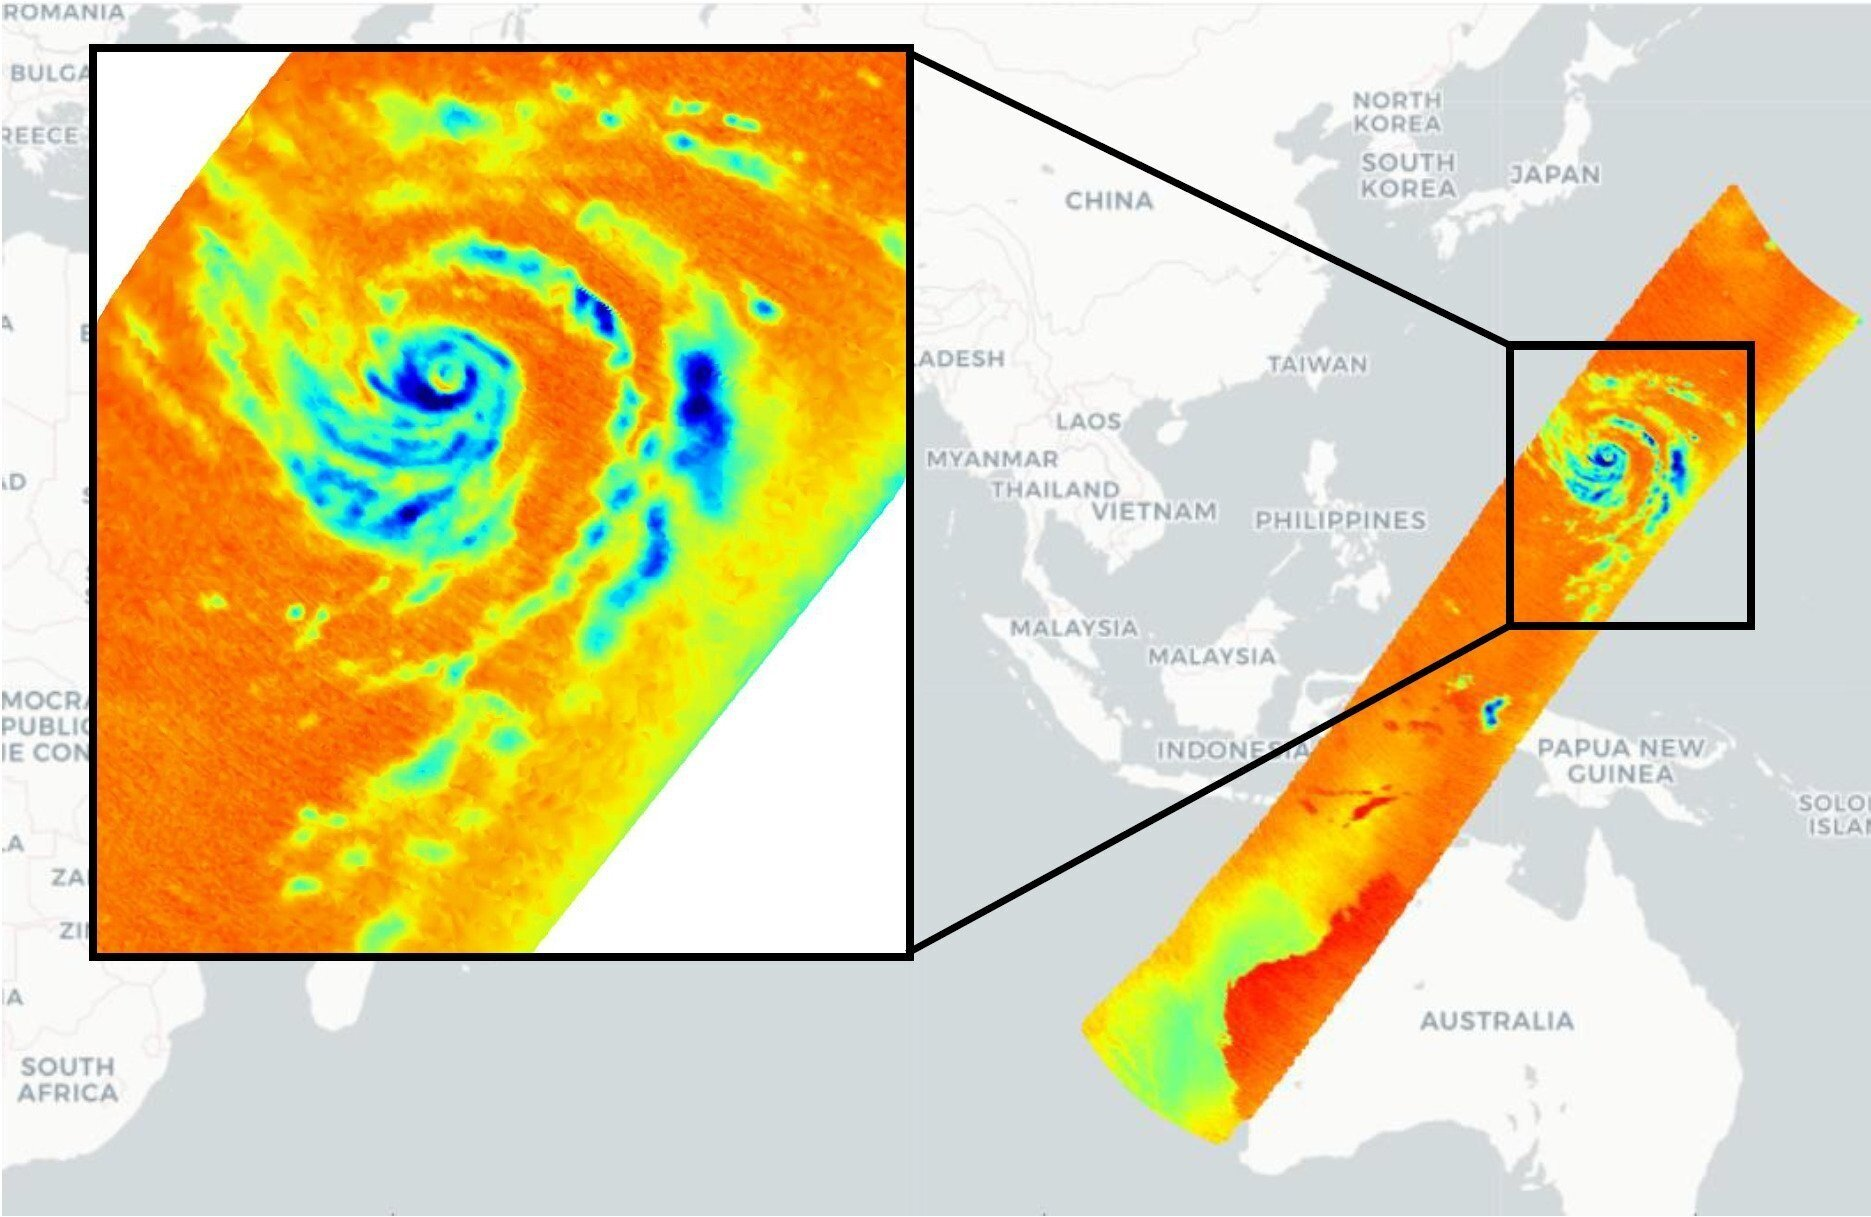 OMS captures High Resolution Imagery of Typhoon Hagibis